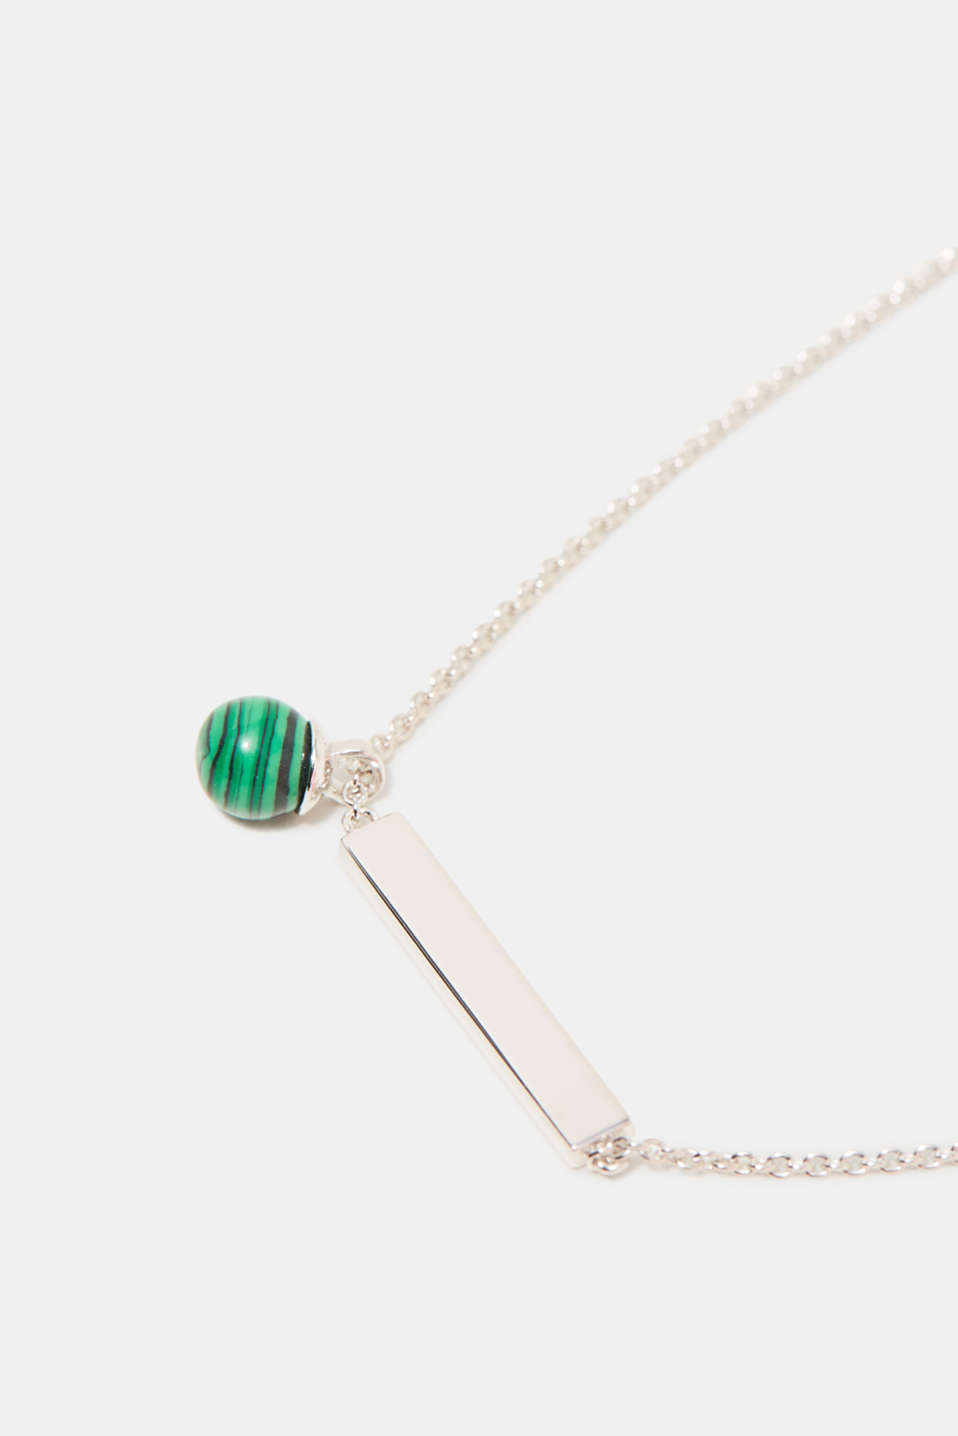 Sterling silver necklace with a green bead